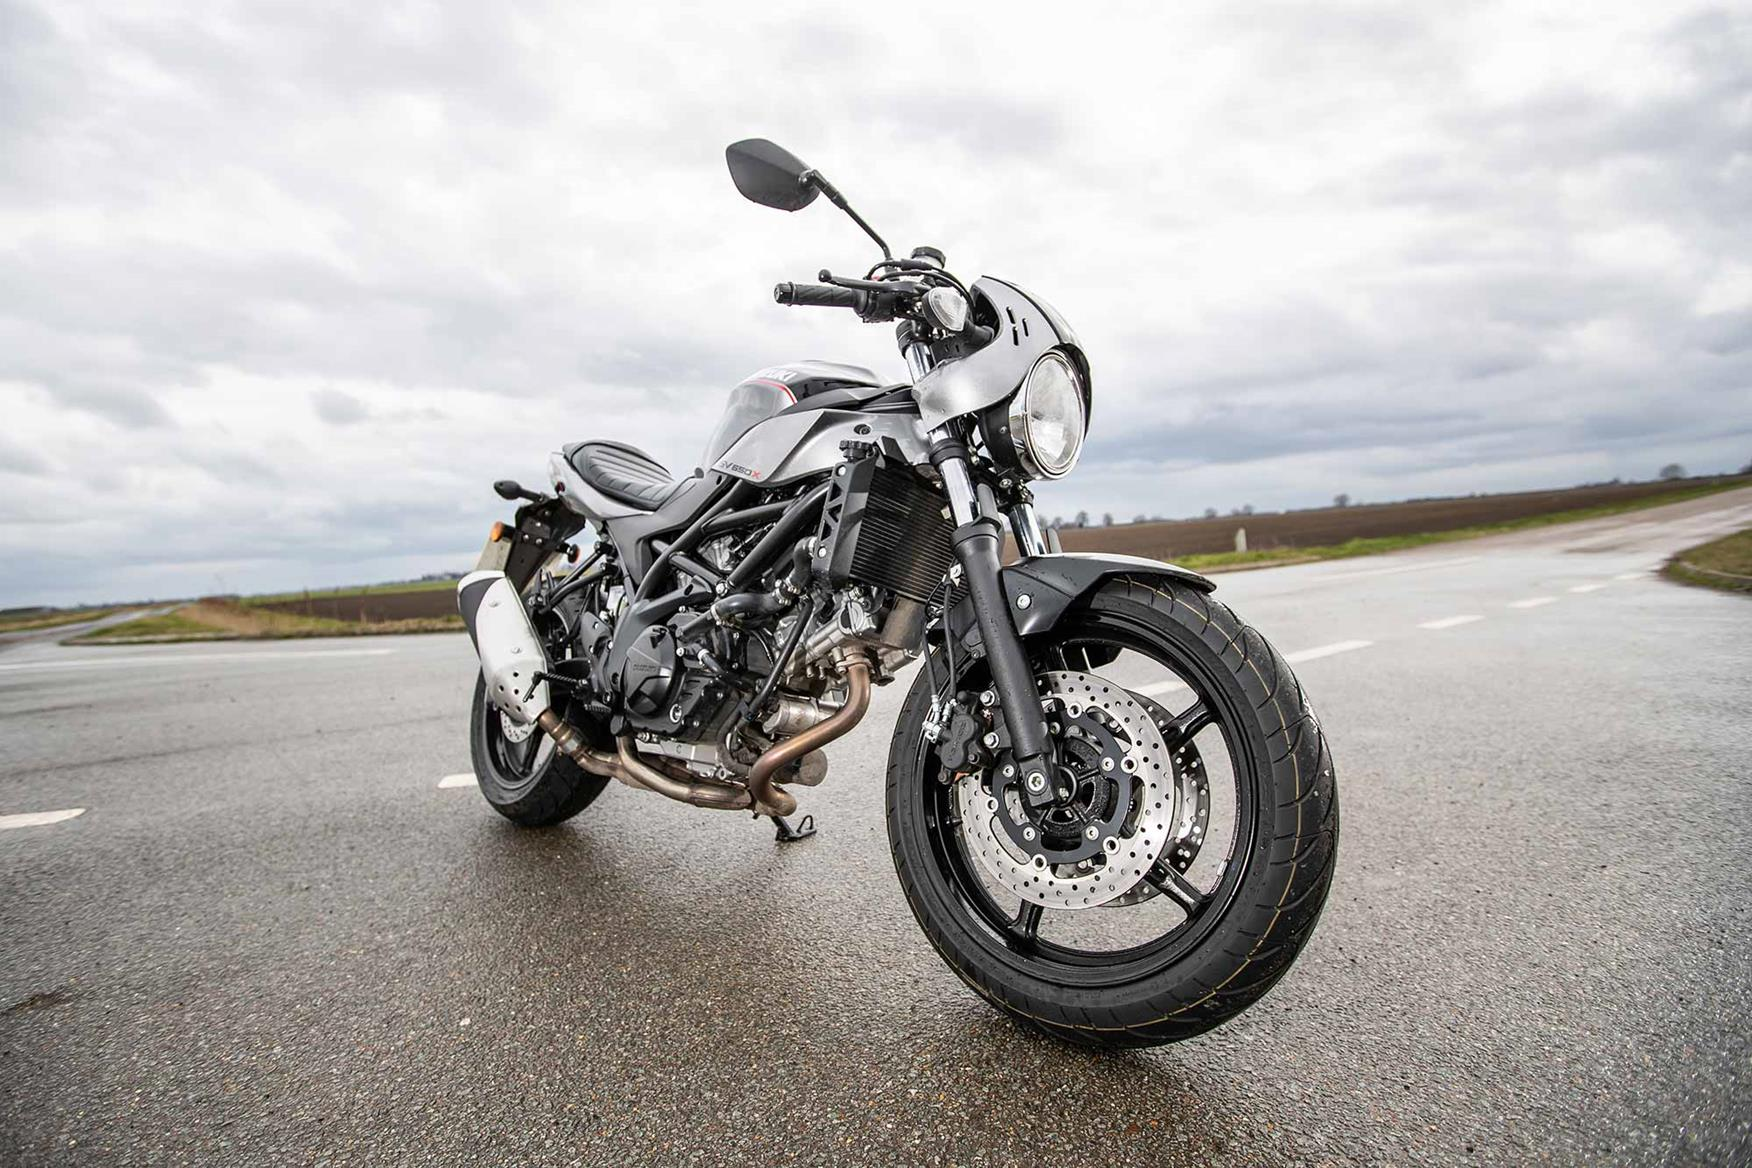 The standard set-up on the Suzuki SV650X